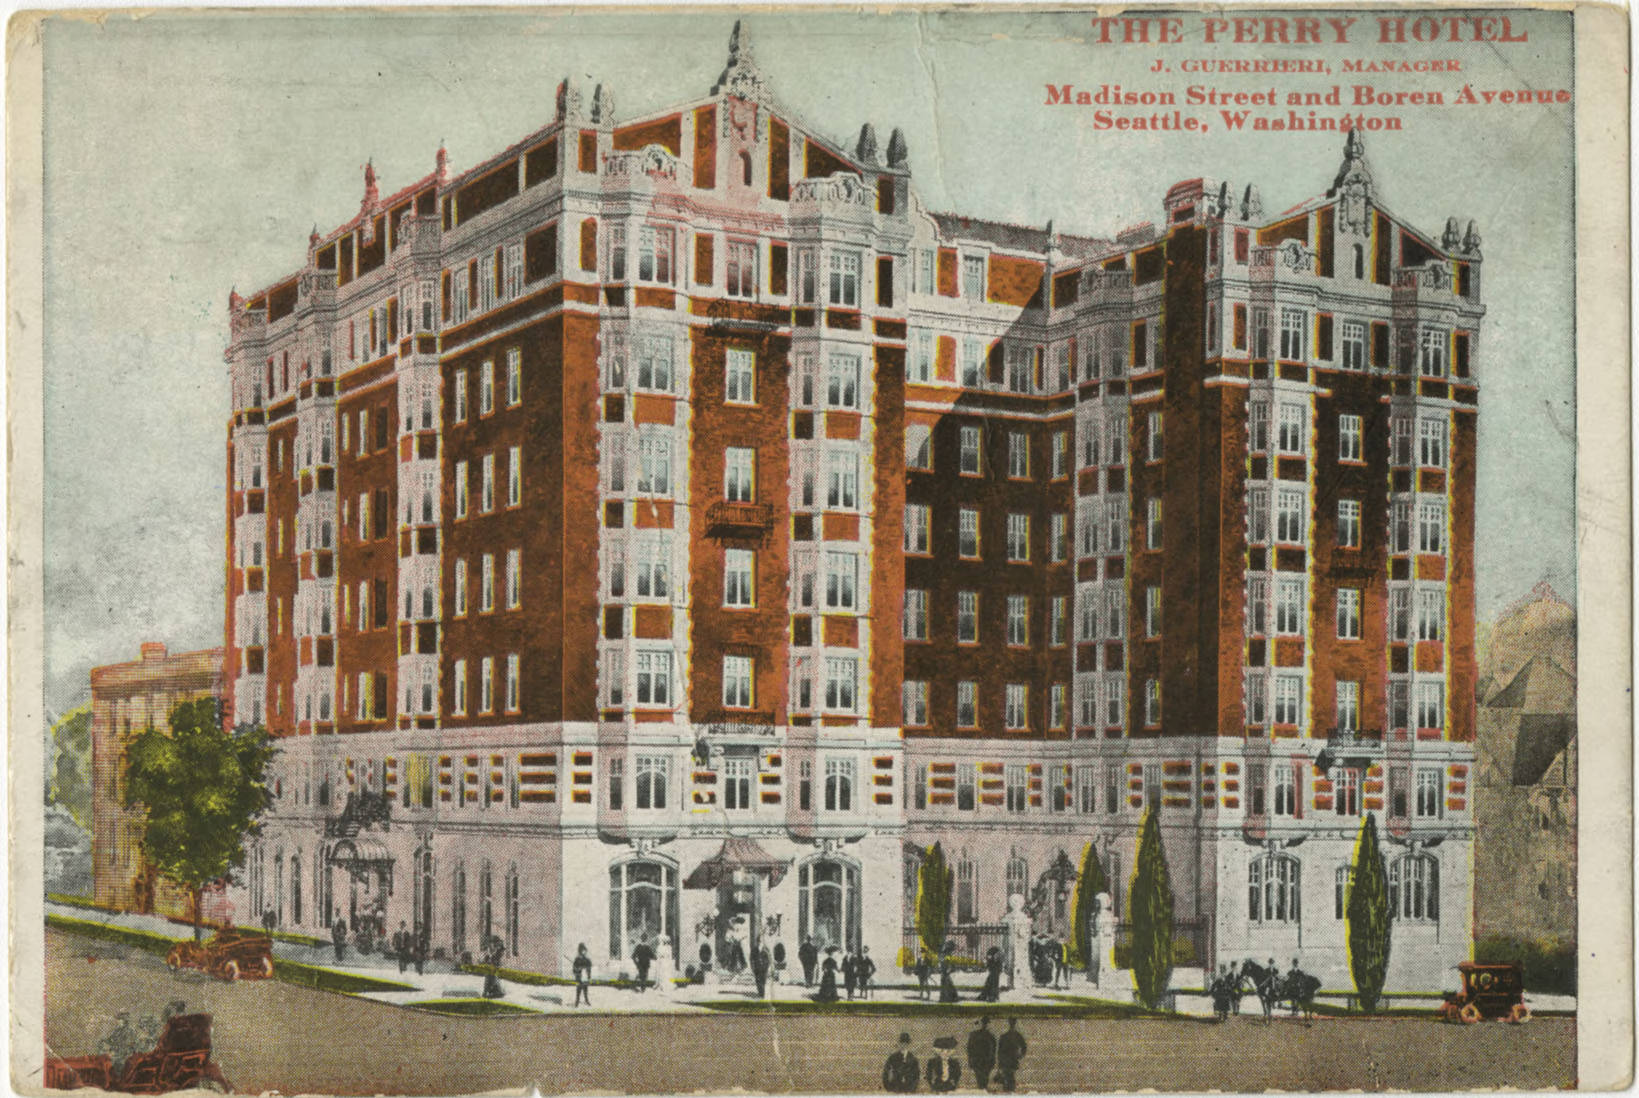 Perry Hotel, ca. 1910